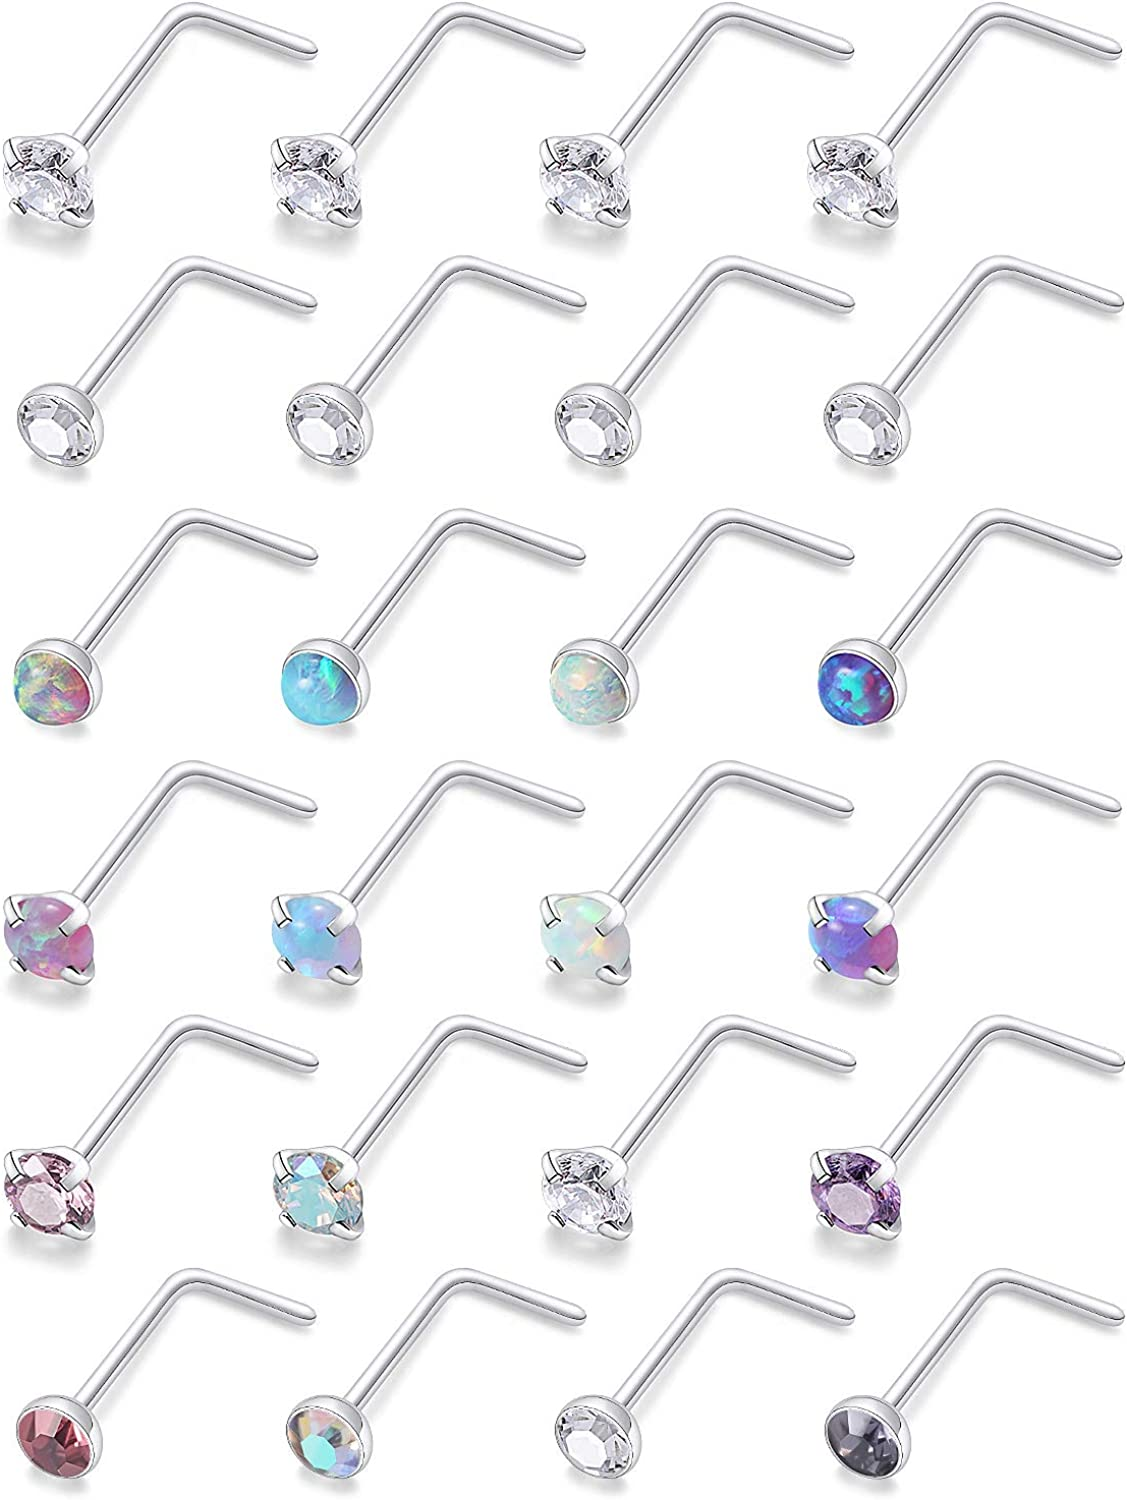 Ranking TOP17 Dyknasz 24PCS 20G Nose Rings Nostril O Surgical Studs Al sold out. Steel